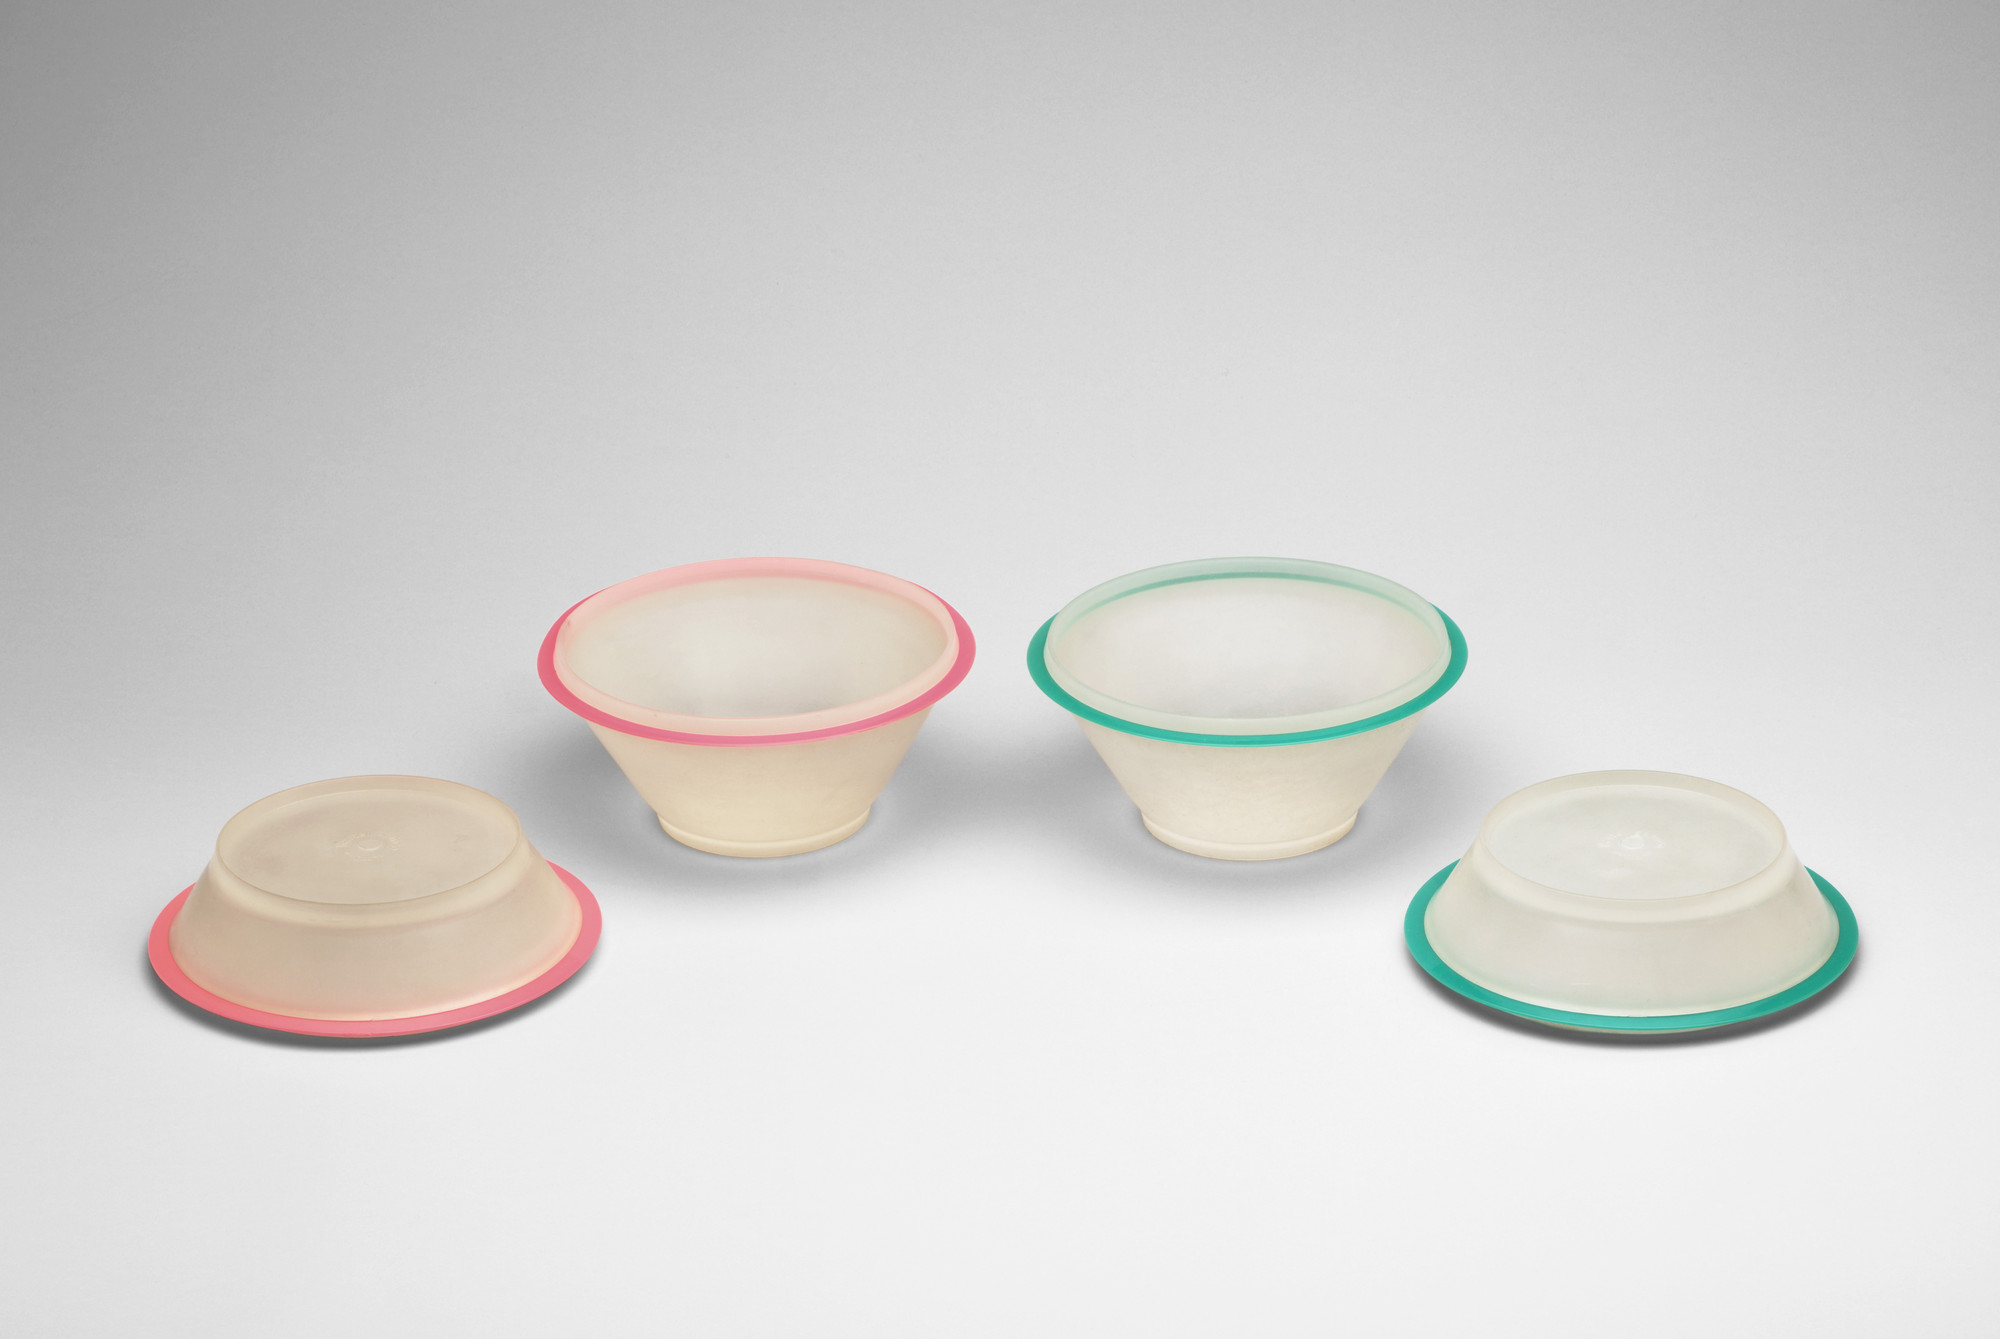 Gino Colombini. Covered Bowls (model KS 1032). 1957